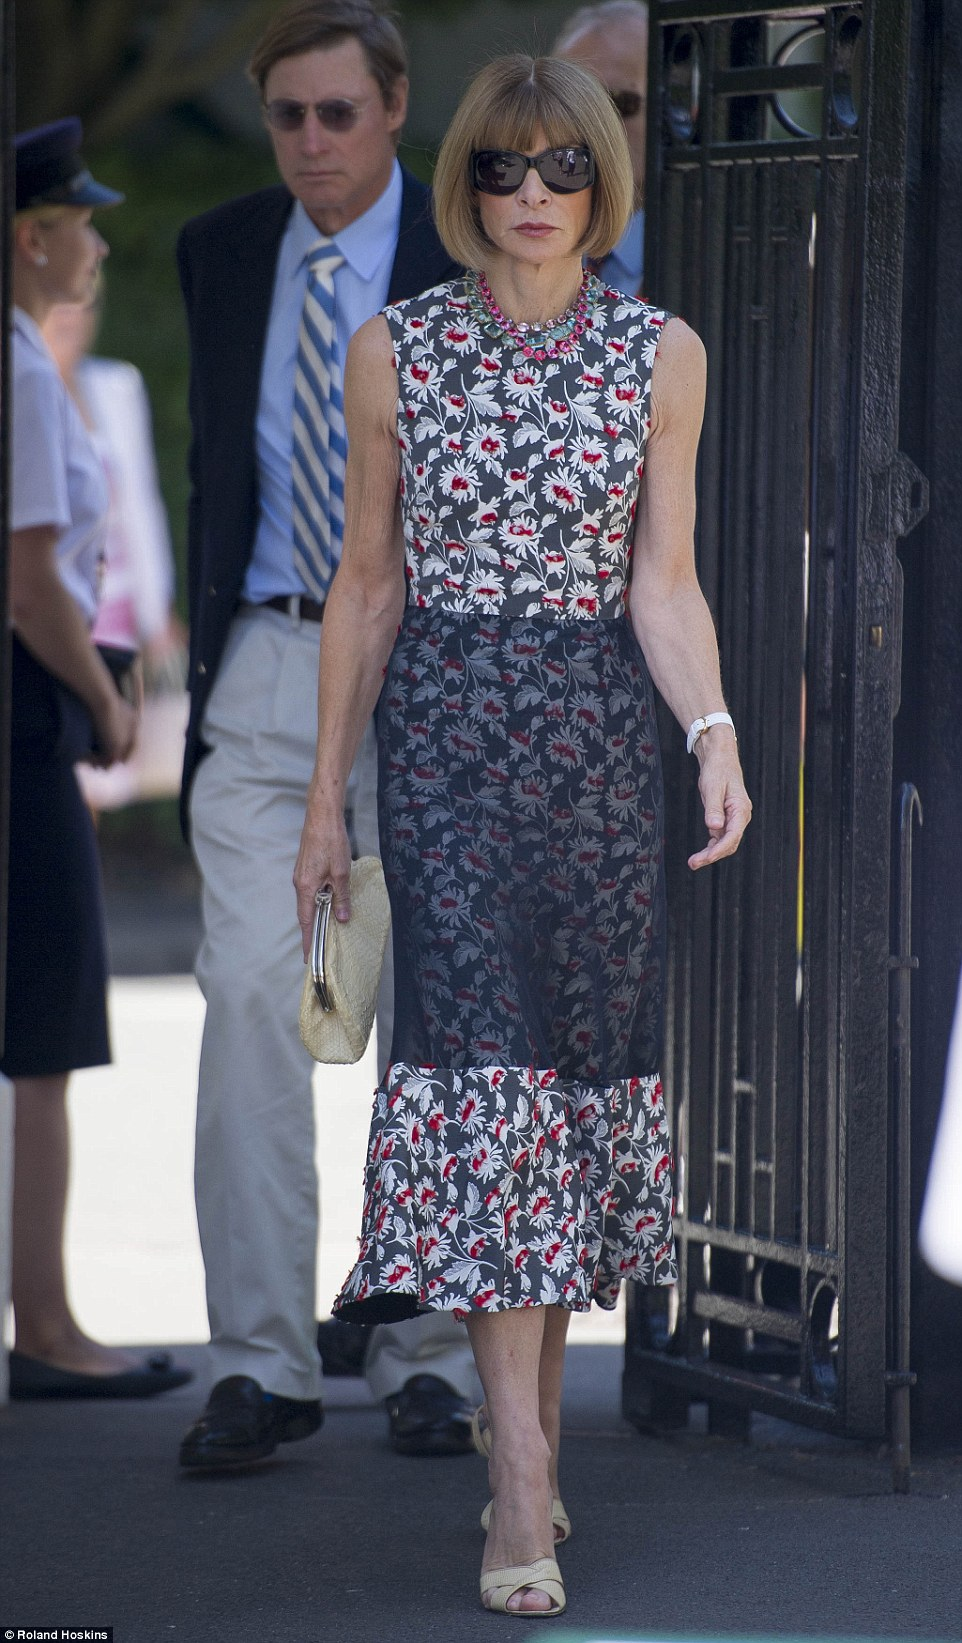 Here she comes: US Vogue's Anna Wintour was also inattendance on Friday